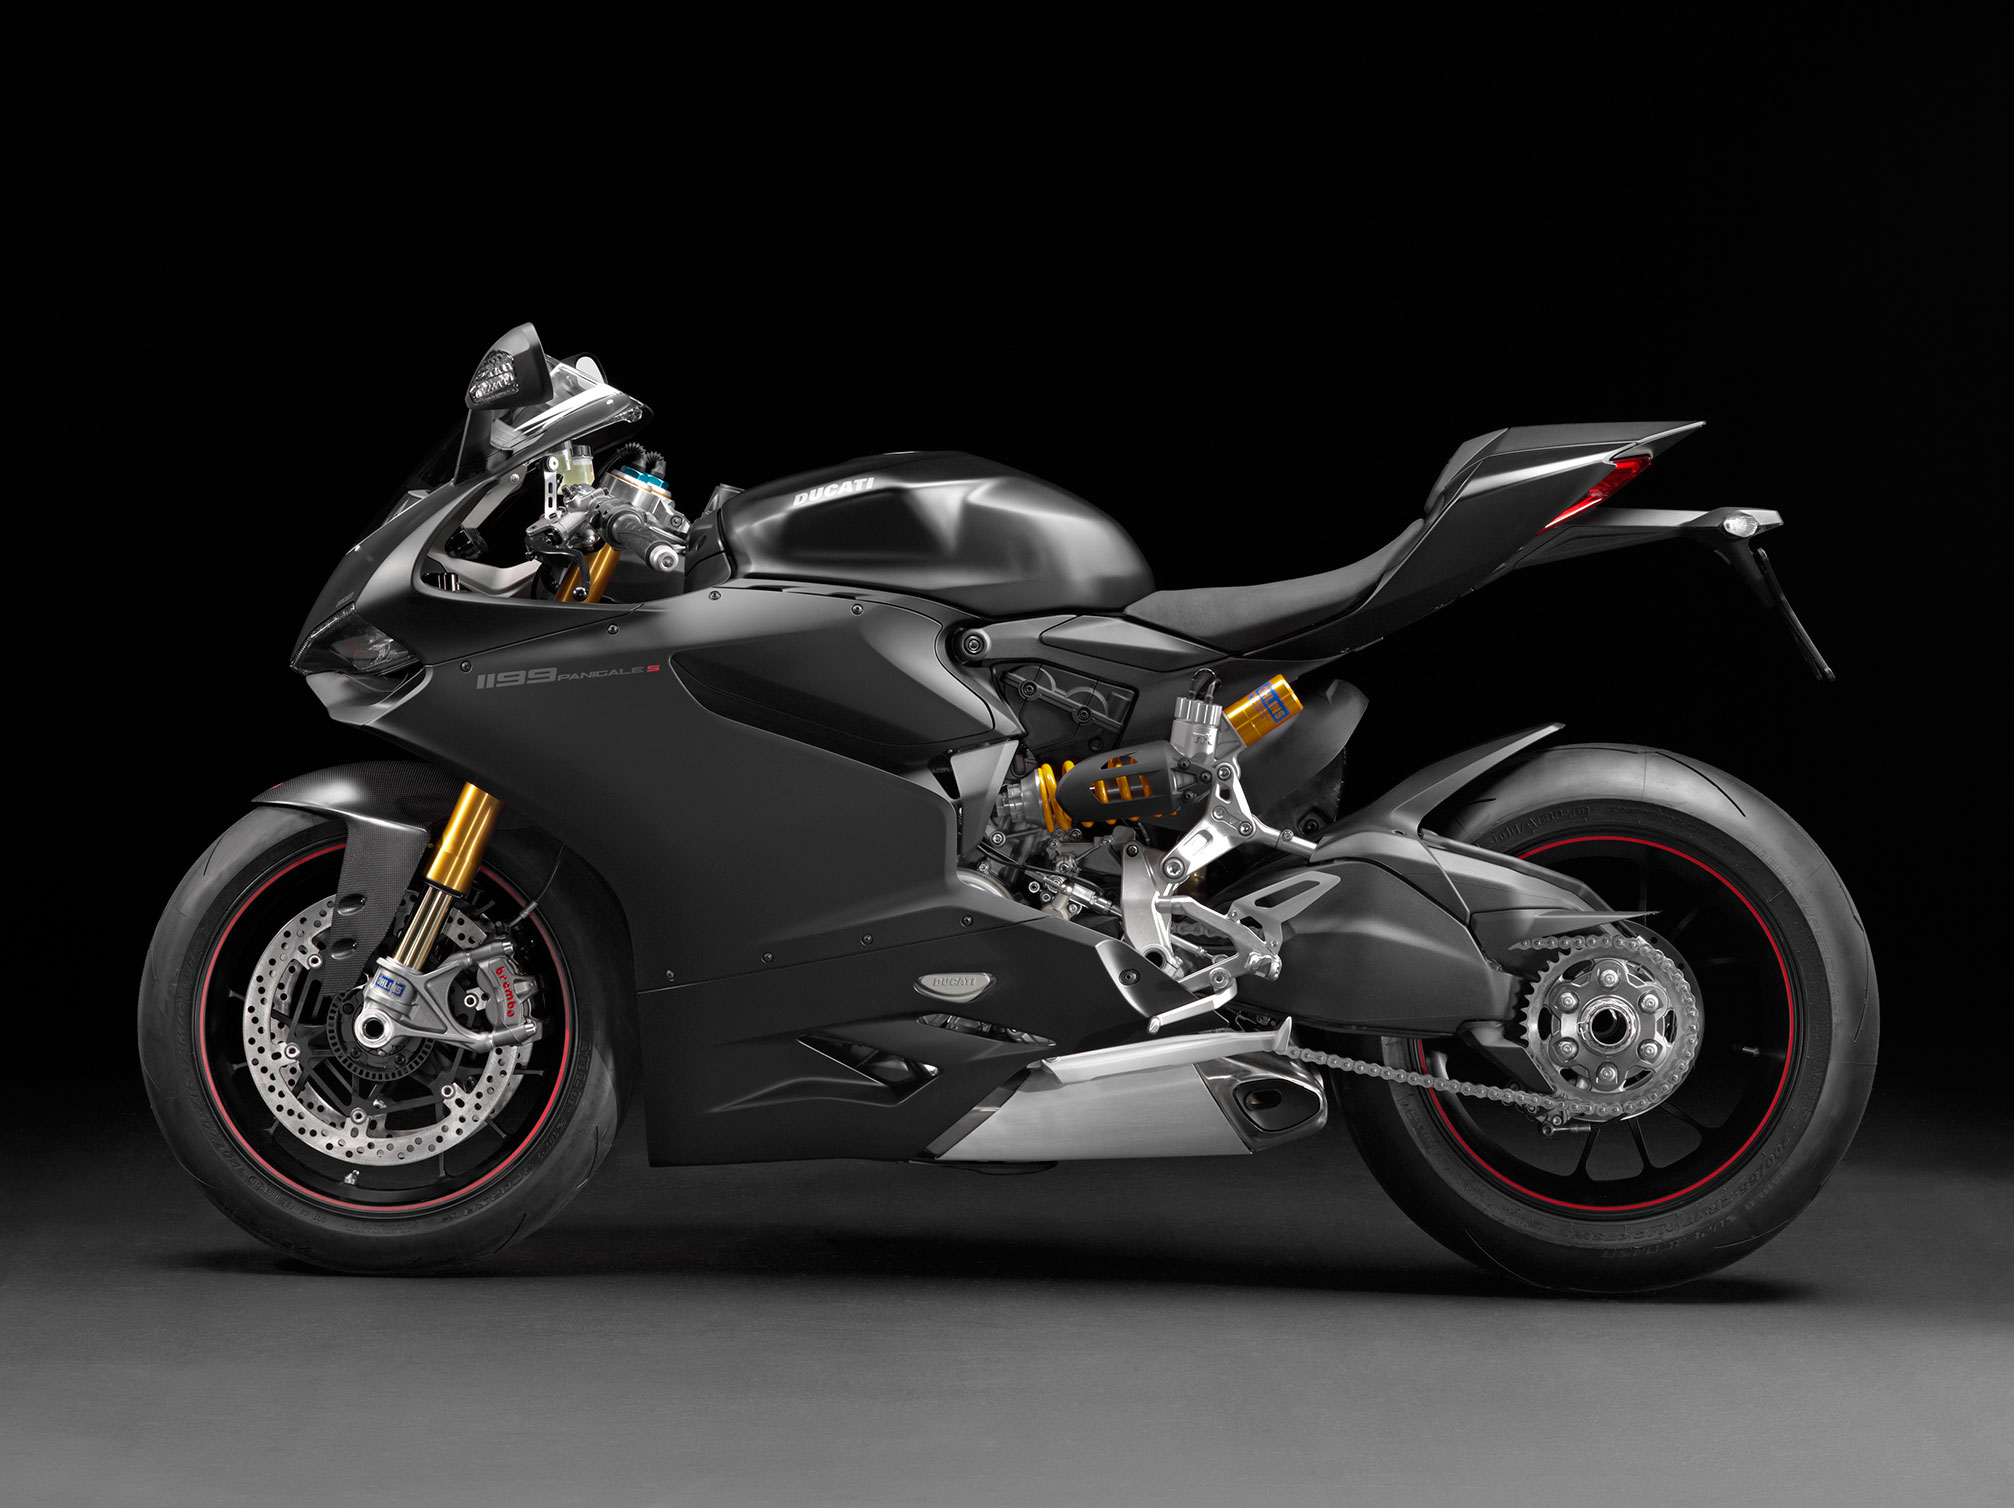 ducati 1199 panigale s specs 2013 2014 autoevolution. Black Bedroom Furniture Sets. Home Design Ideas